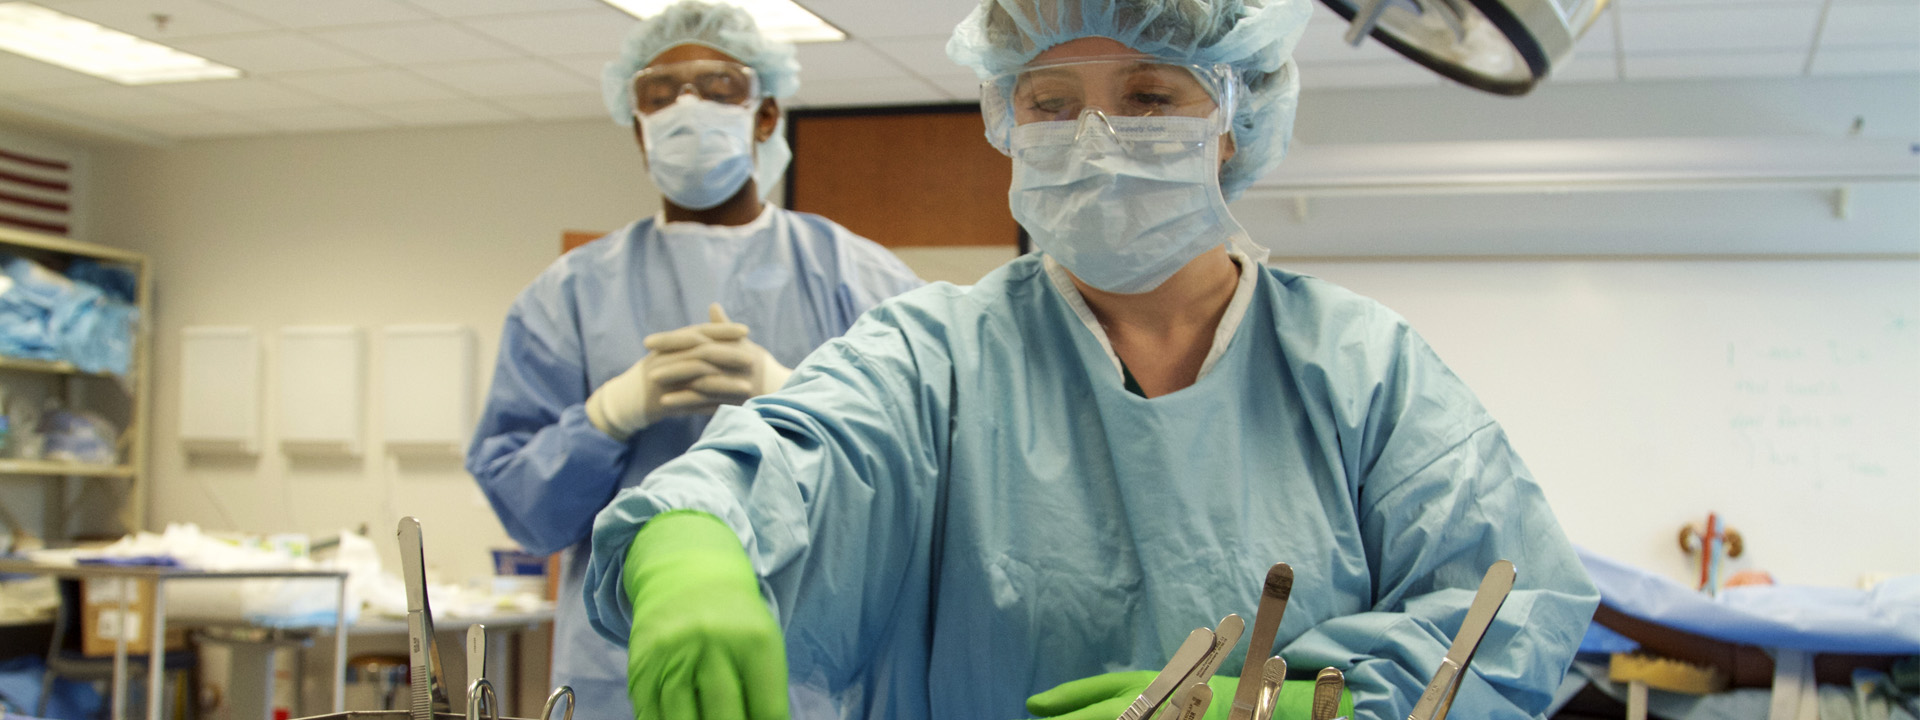 surgical tech A surgical technologist, also called a scrub, scrub tech, surgical technician, or operating room technician, is an allied health professional working as a part of the team delivering surgical care.